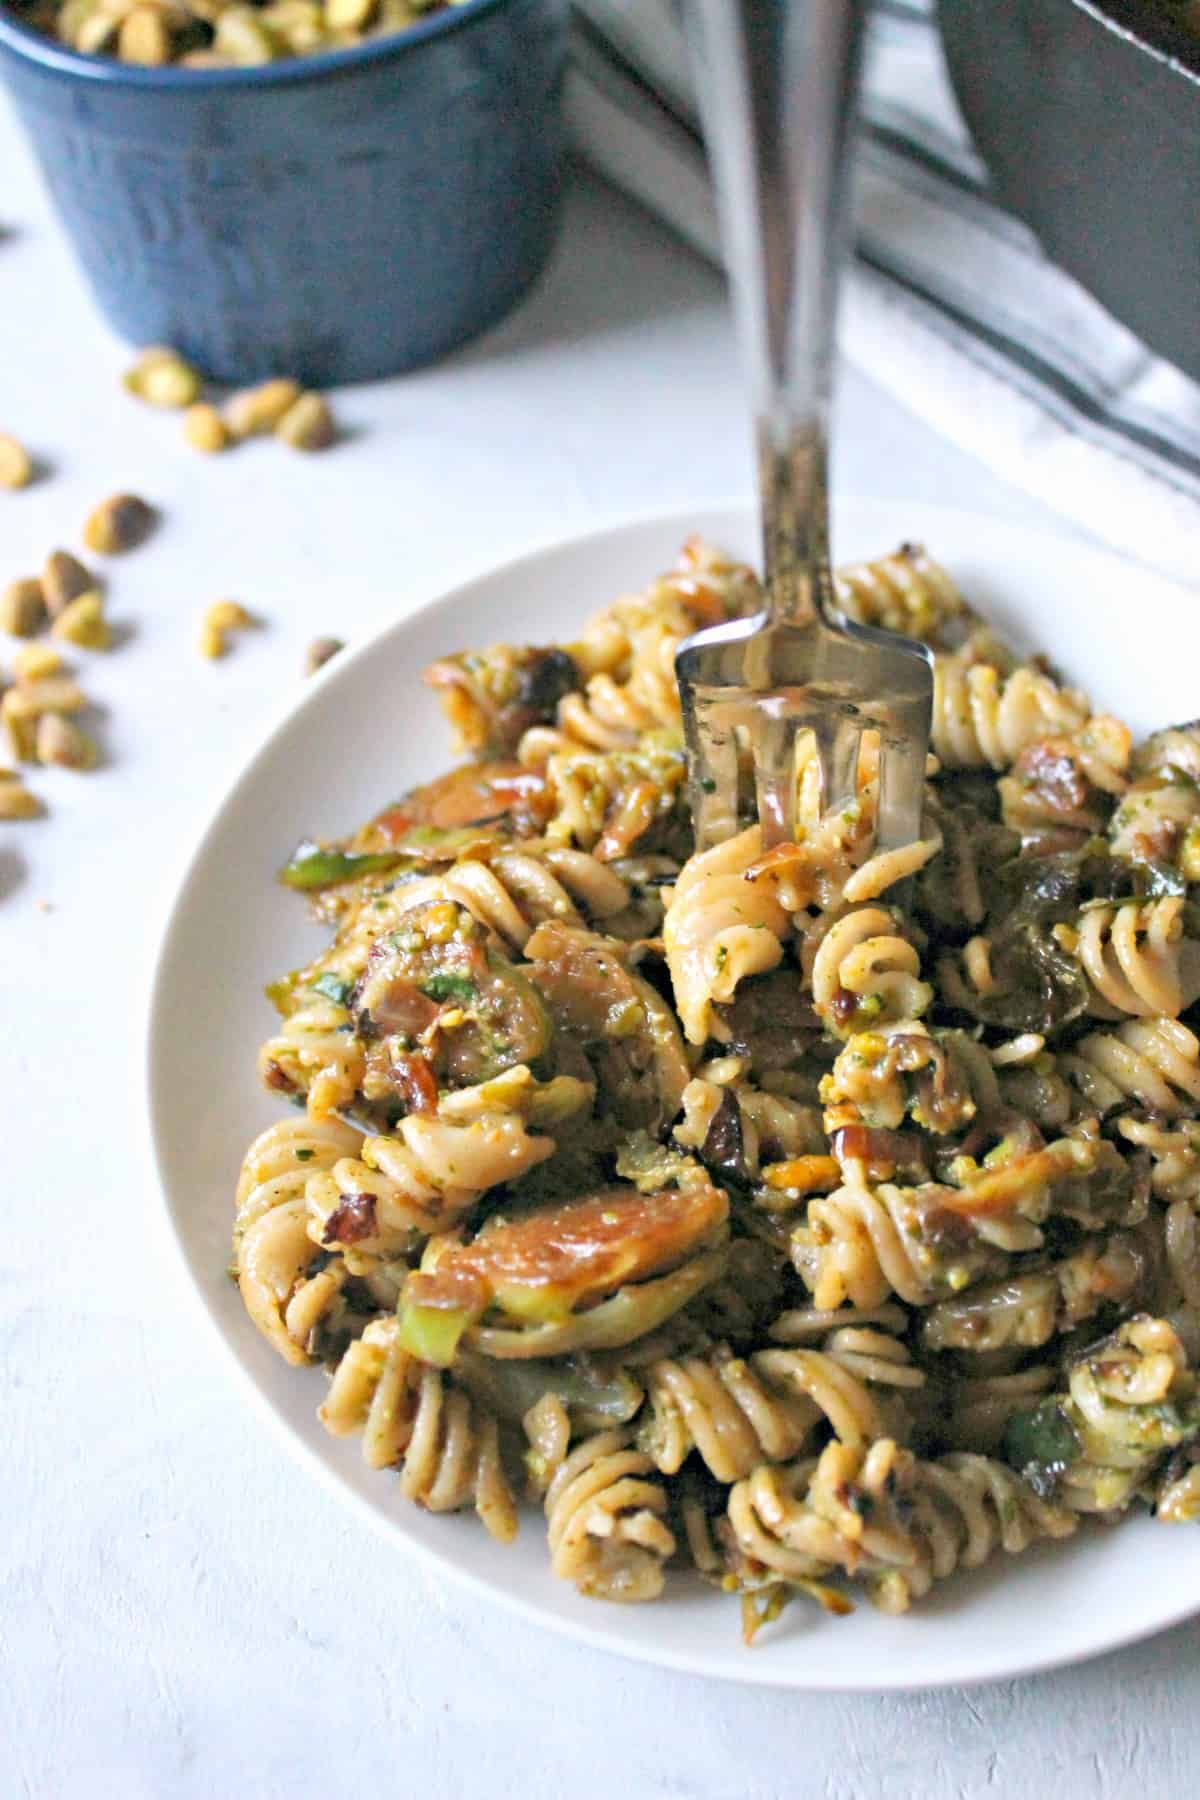 Perfectly caramelized Brussels sprouts and pistachio pesto add an incredible flavor to this hearty pasta skillet that's easy enough for a weeknight meal.